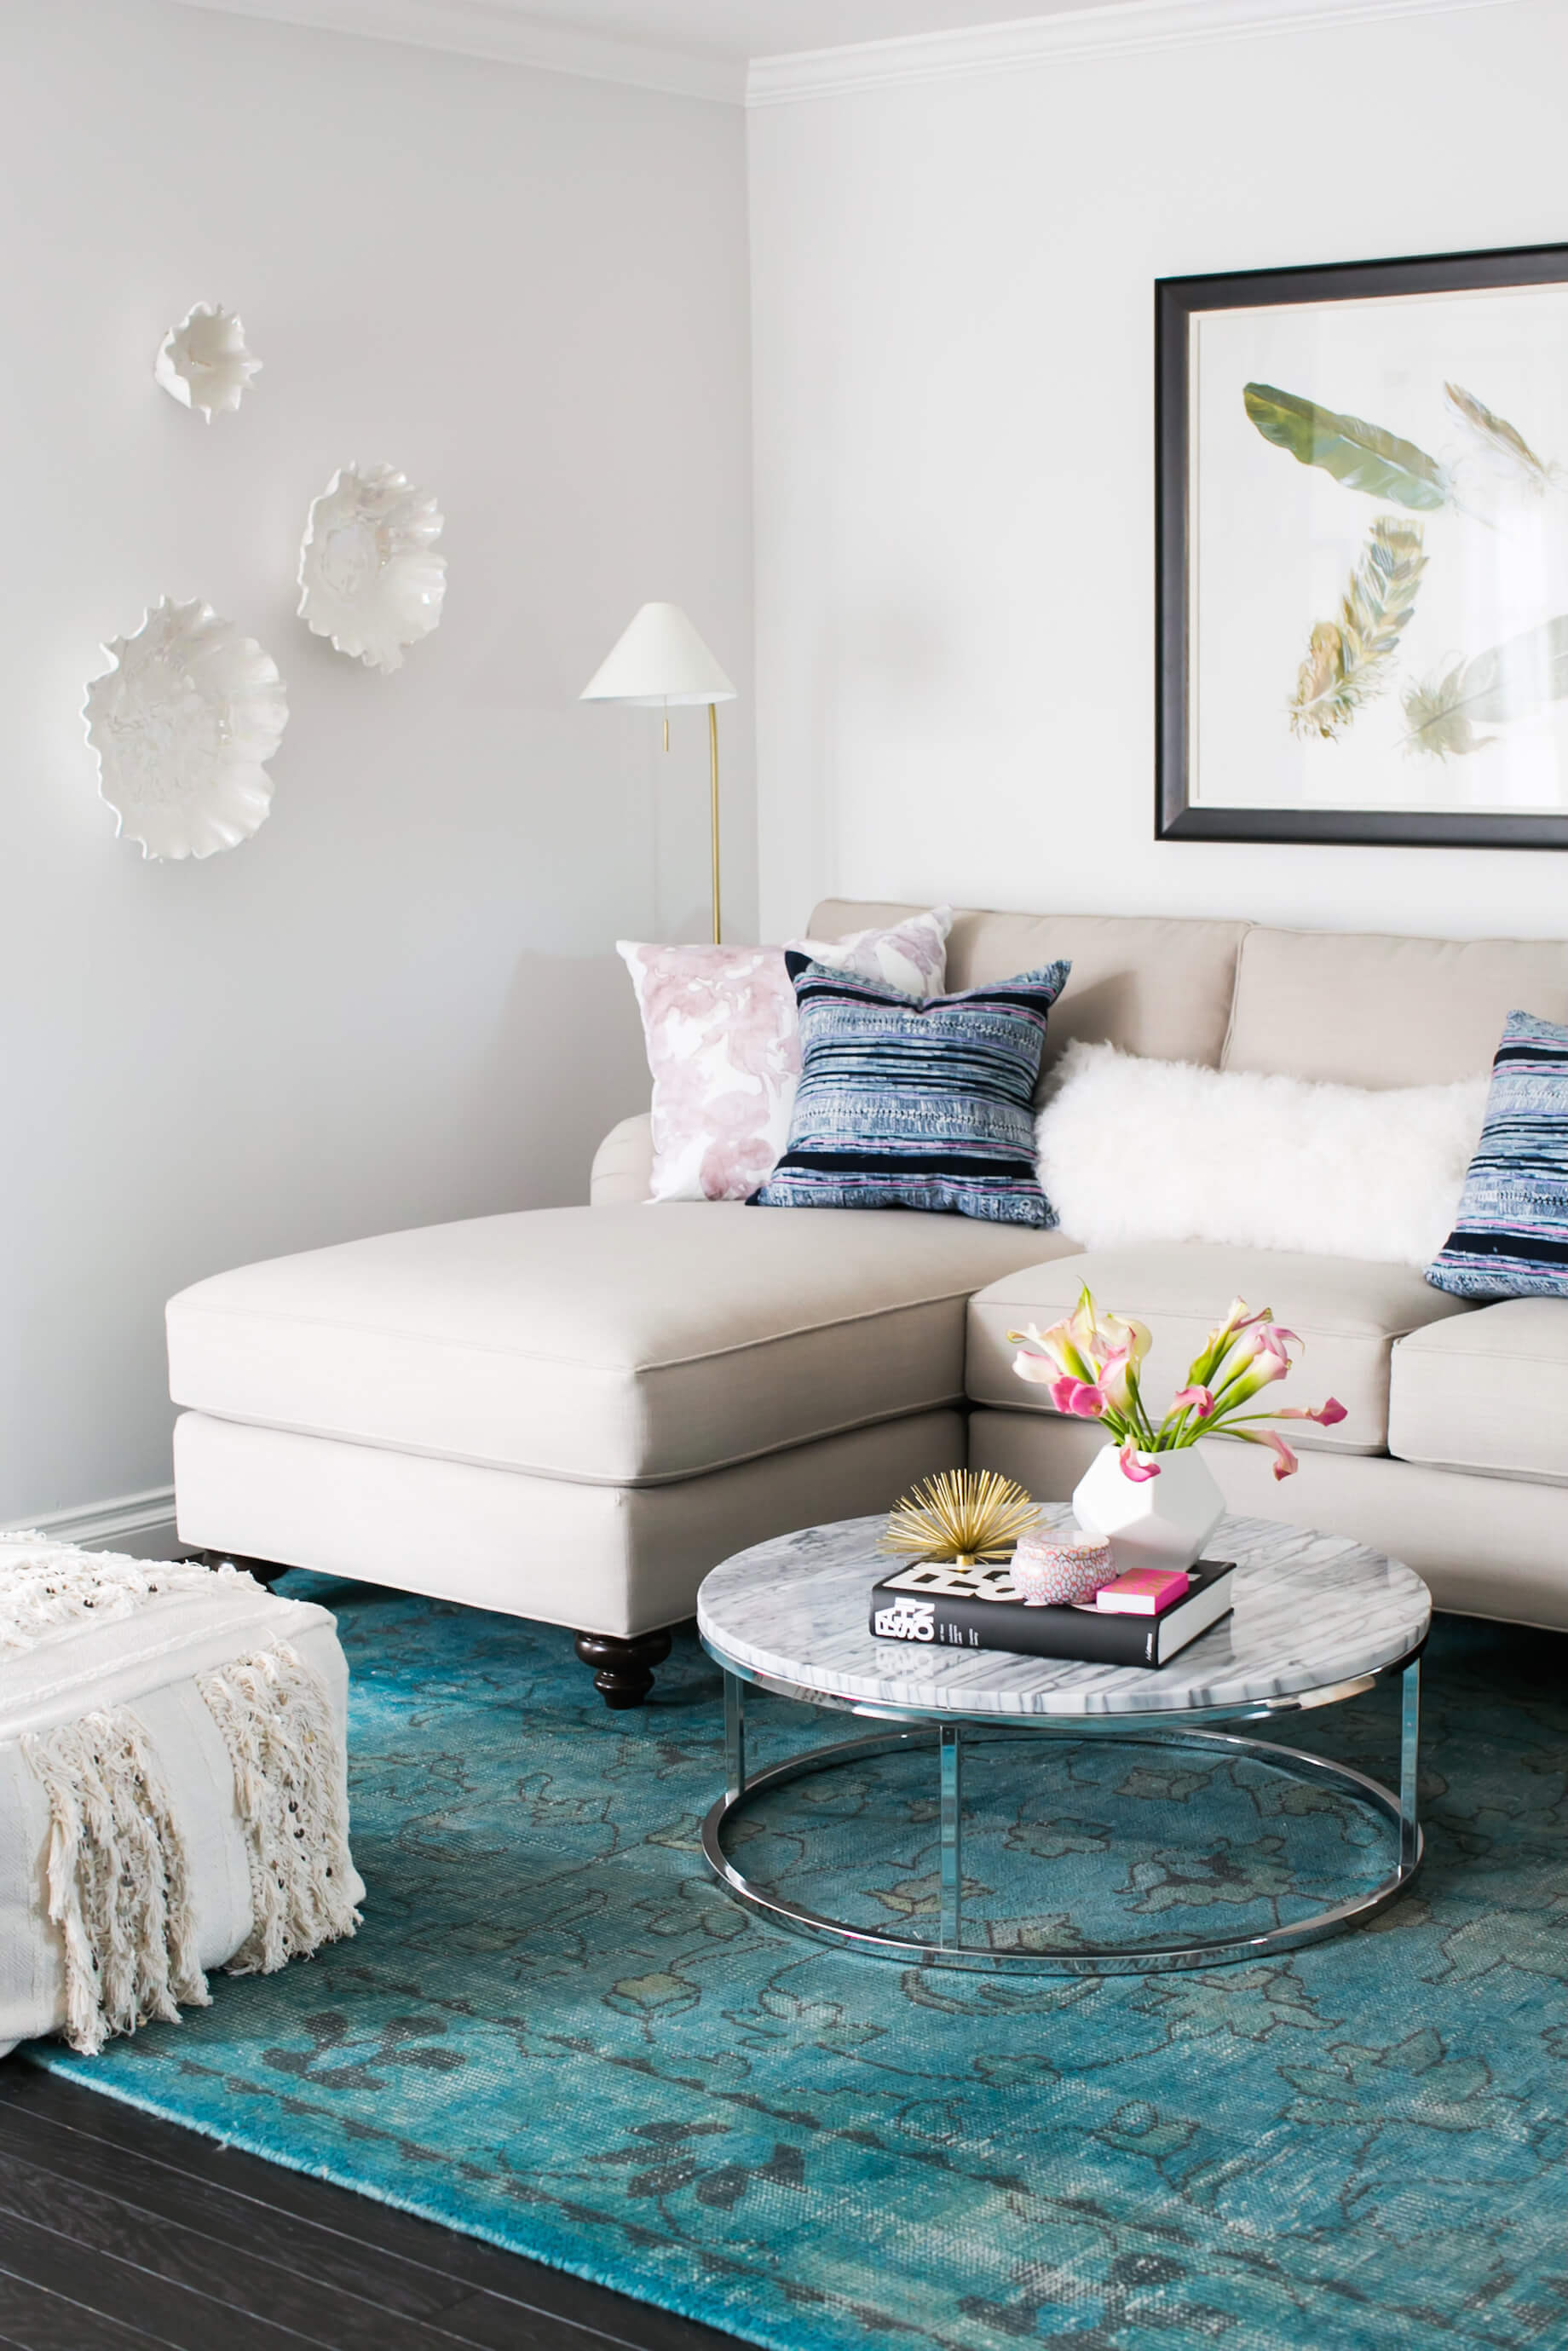 M Loves M Wellness Challenge No. 8 - (blue and beige living room with moroccan wedding blanket poufs)